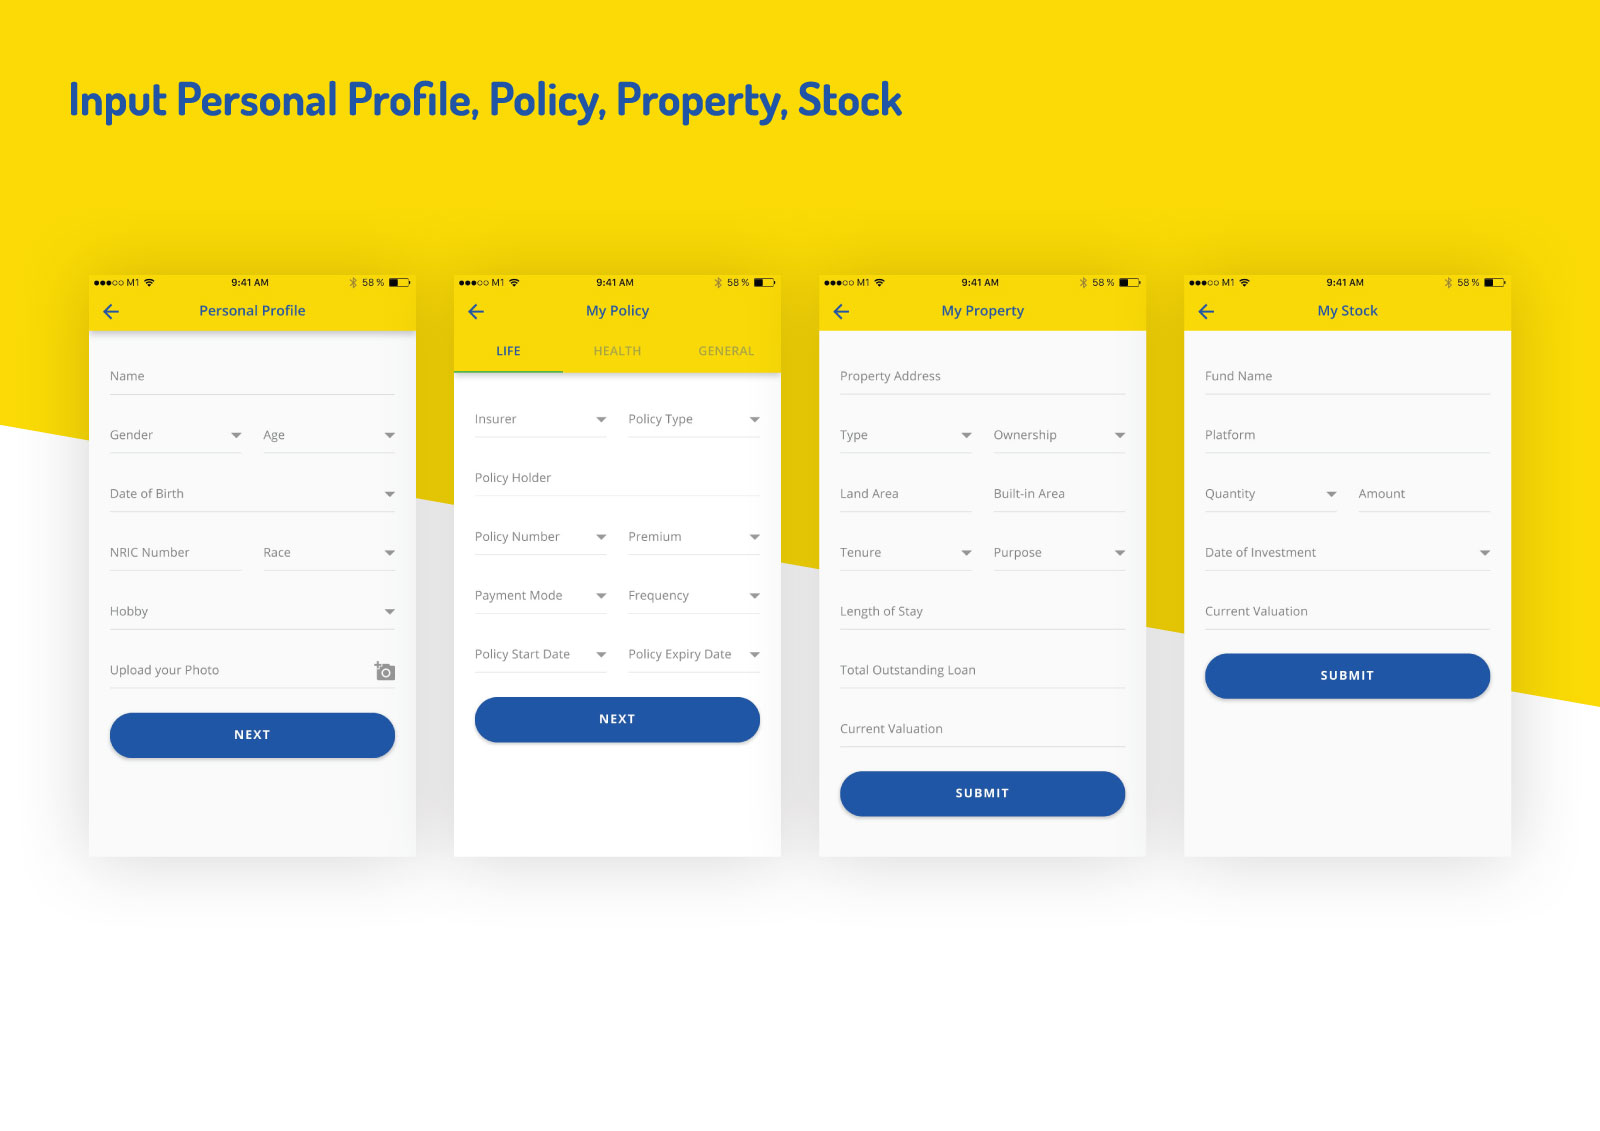 Asset Snaps - Input Personal Profile, Policy, Property Stock